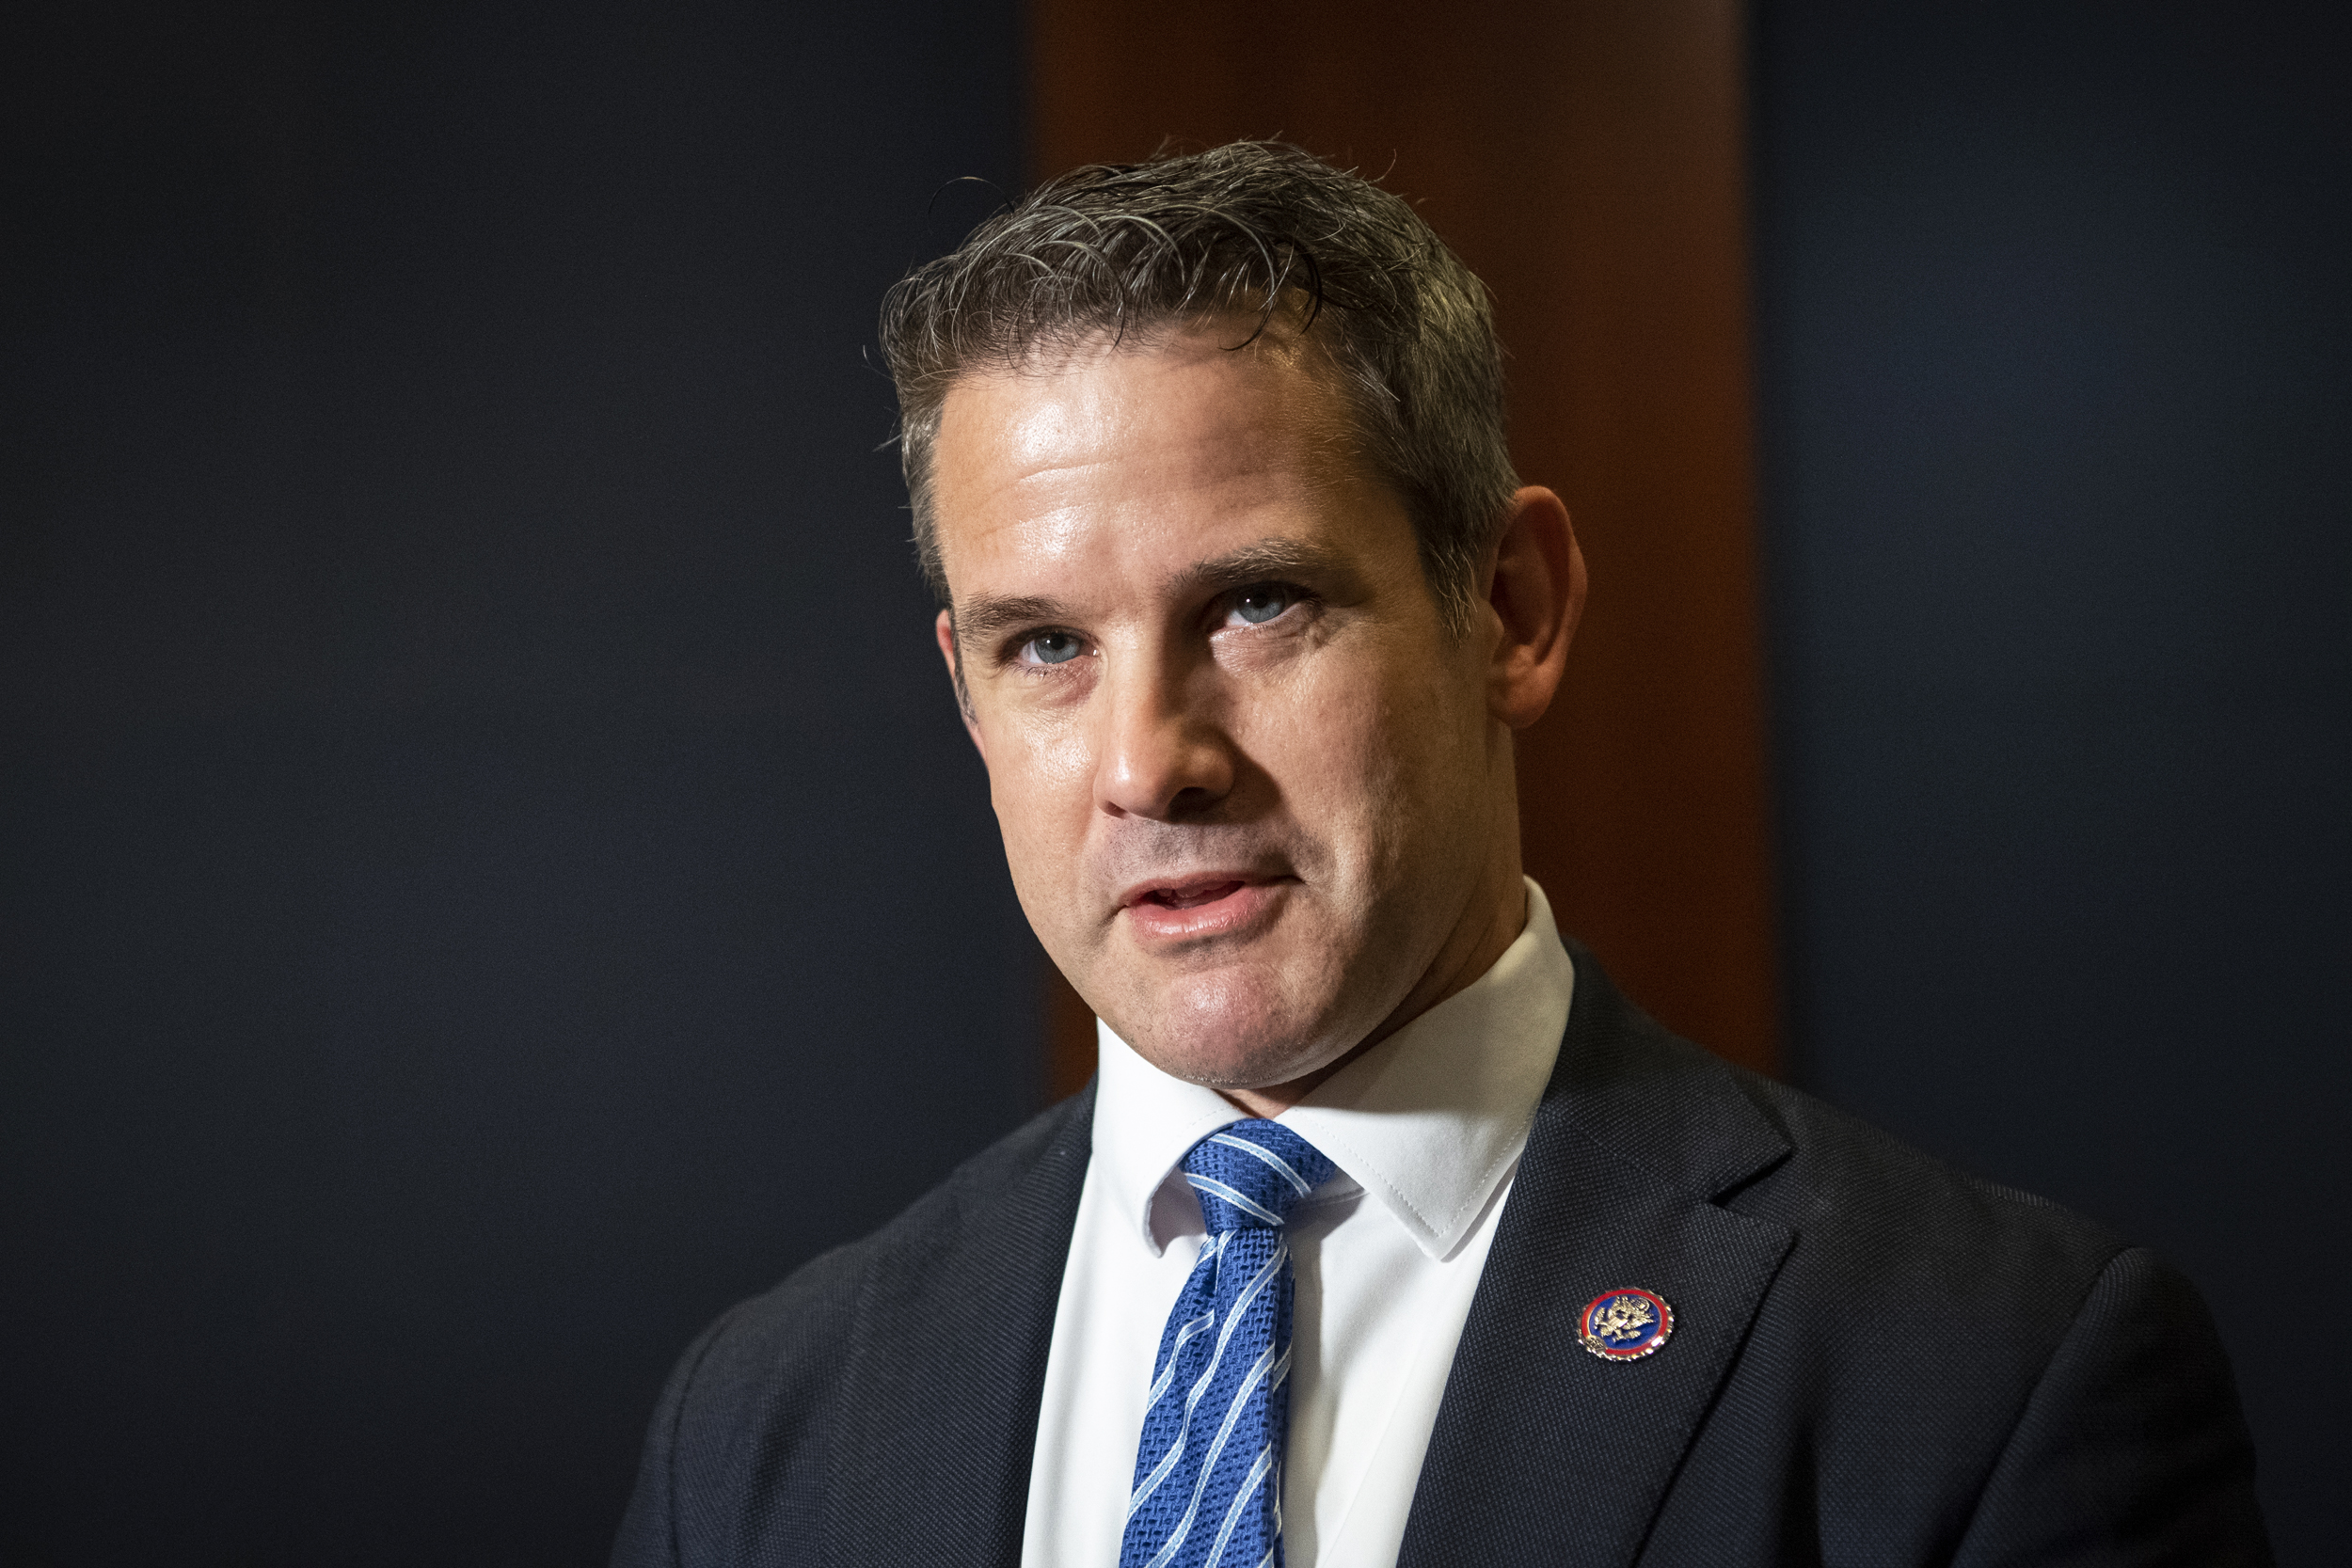 Pelosi appoints Republican Rep. Kinzinger to Jan. 6 committee